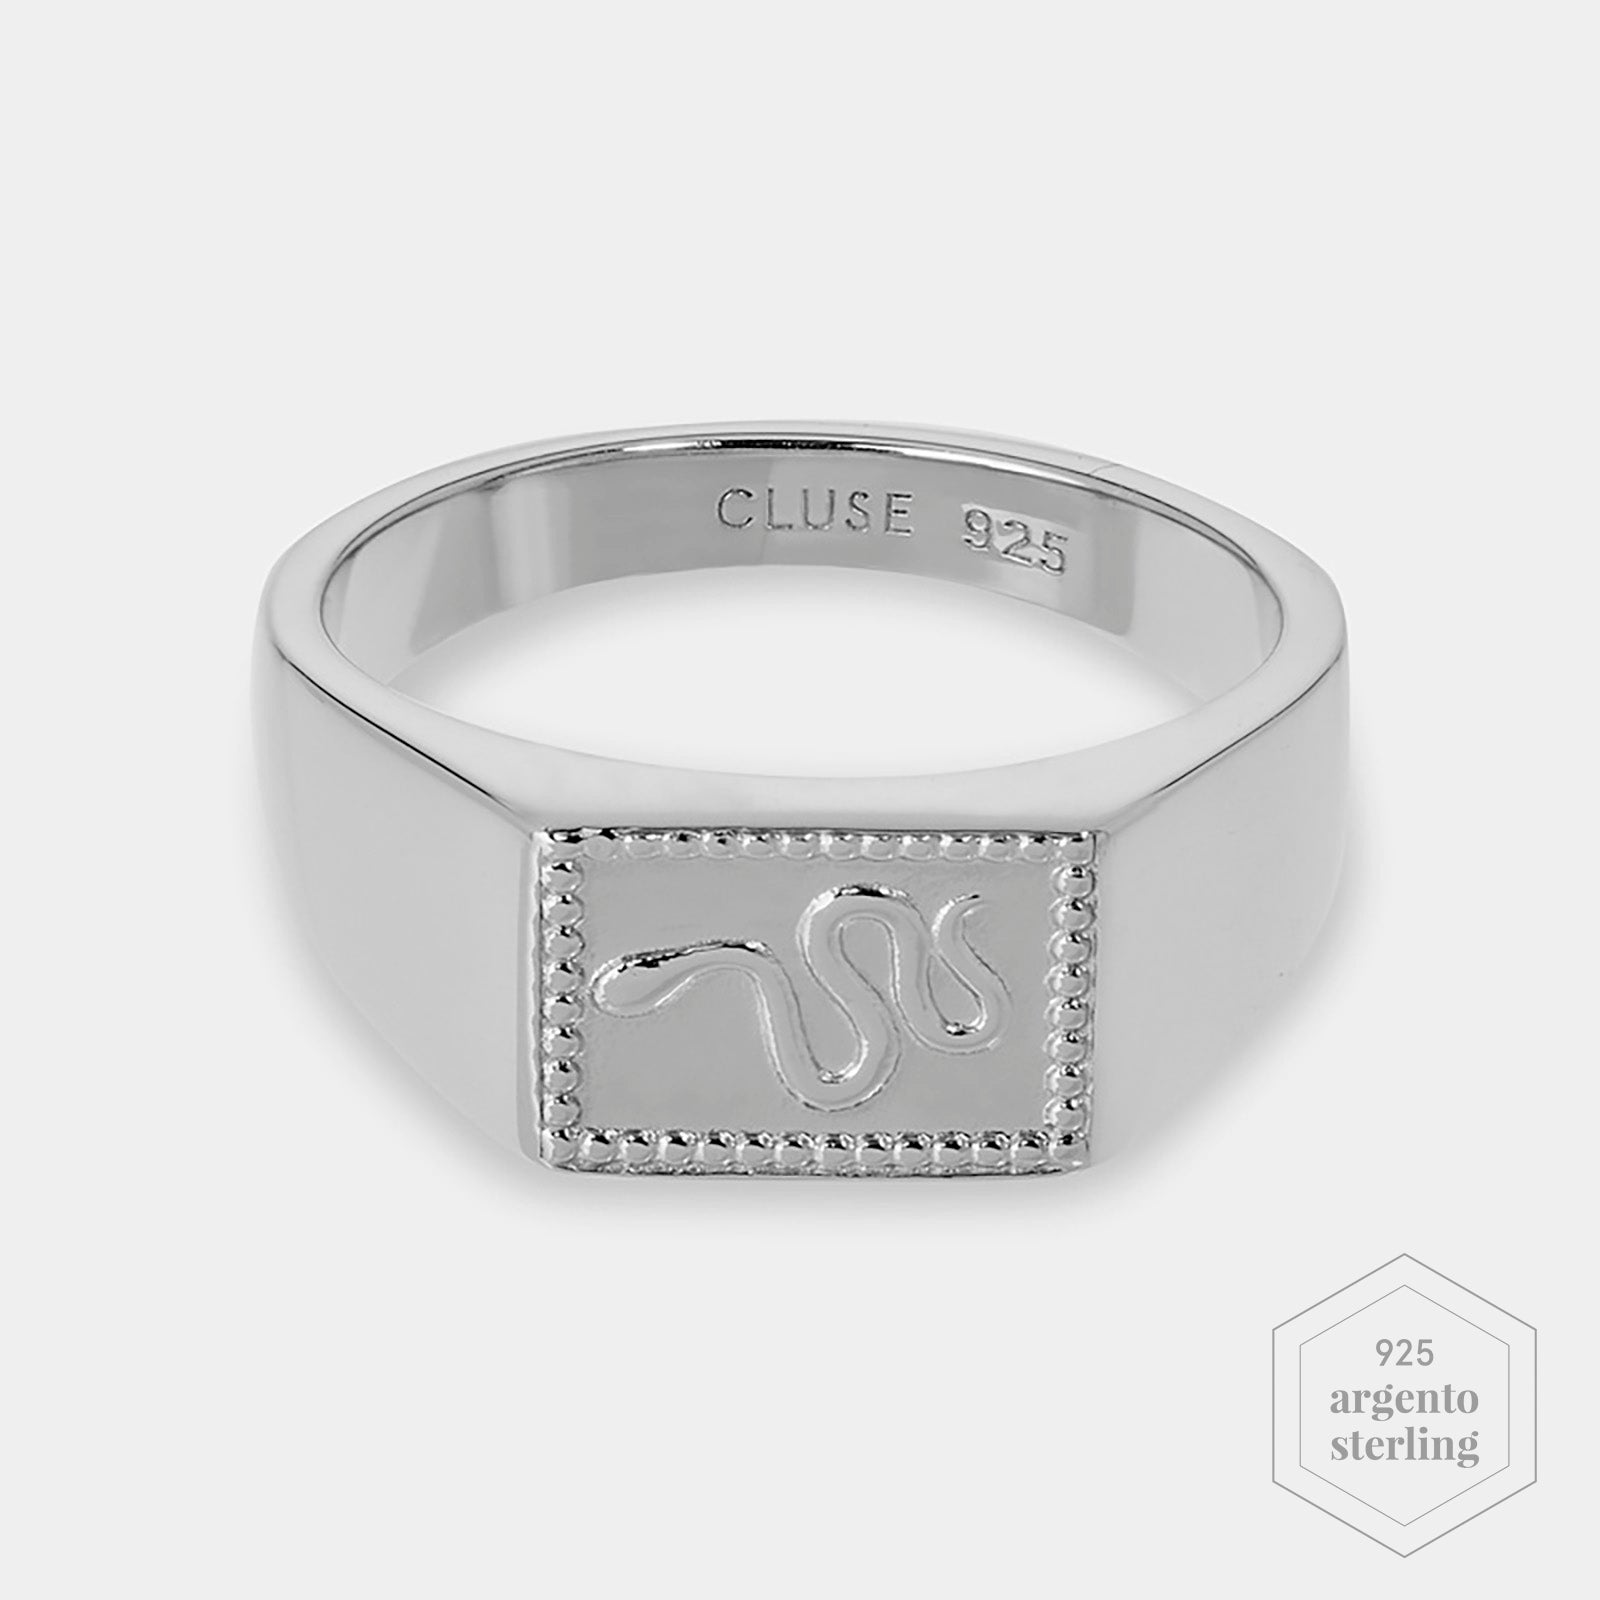 CLUSE Force Tropicale Silver Signet Rectangular Ring 54 CLJ42012-54 - Anello taglia 54